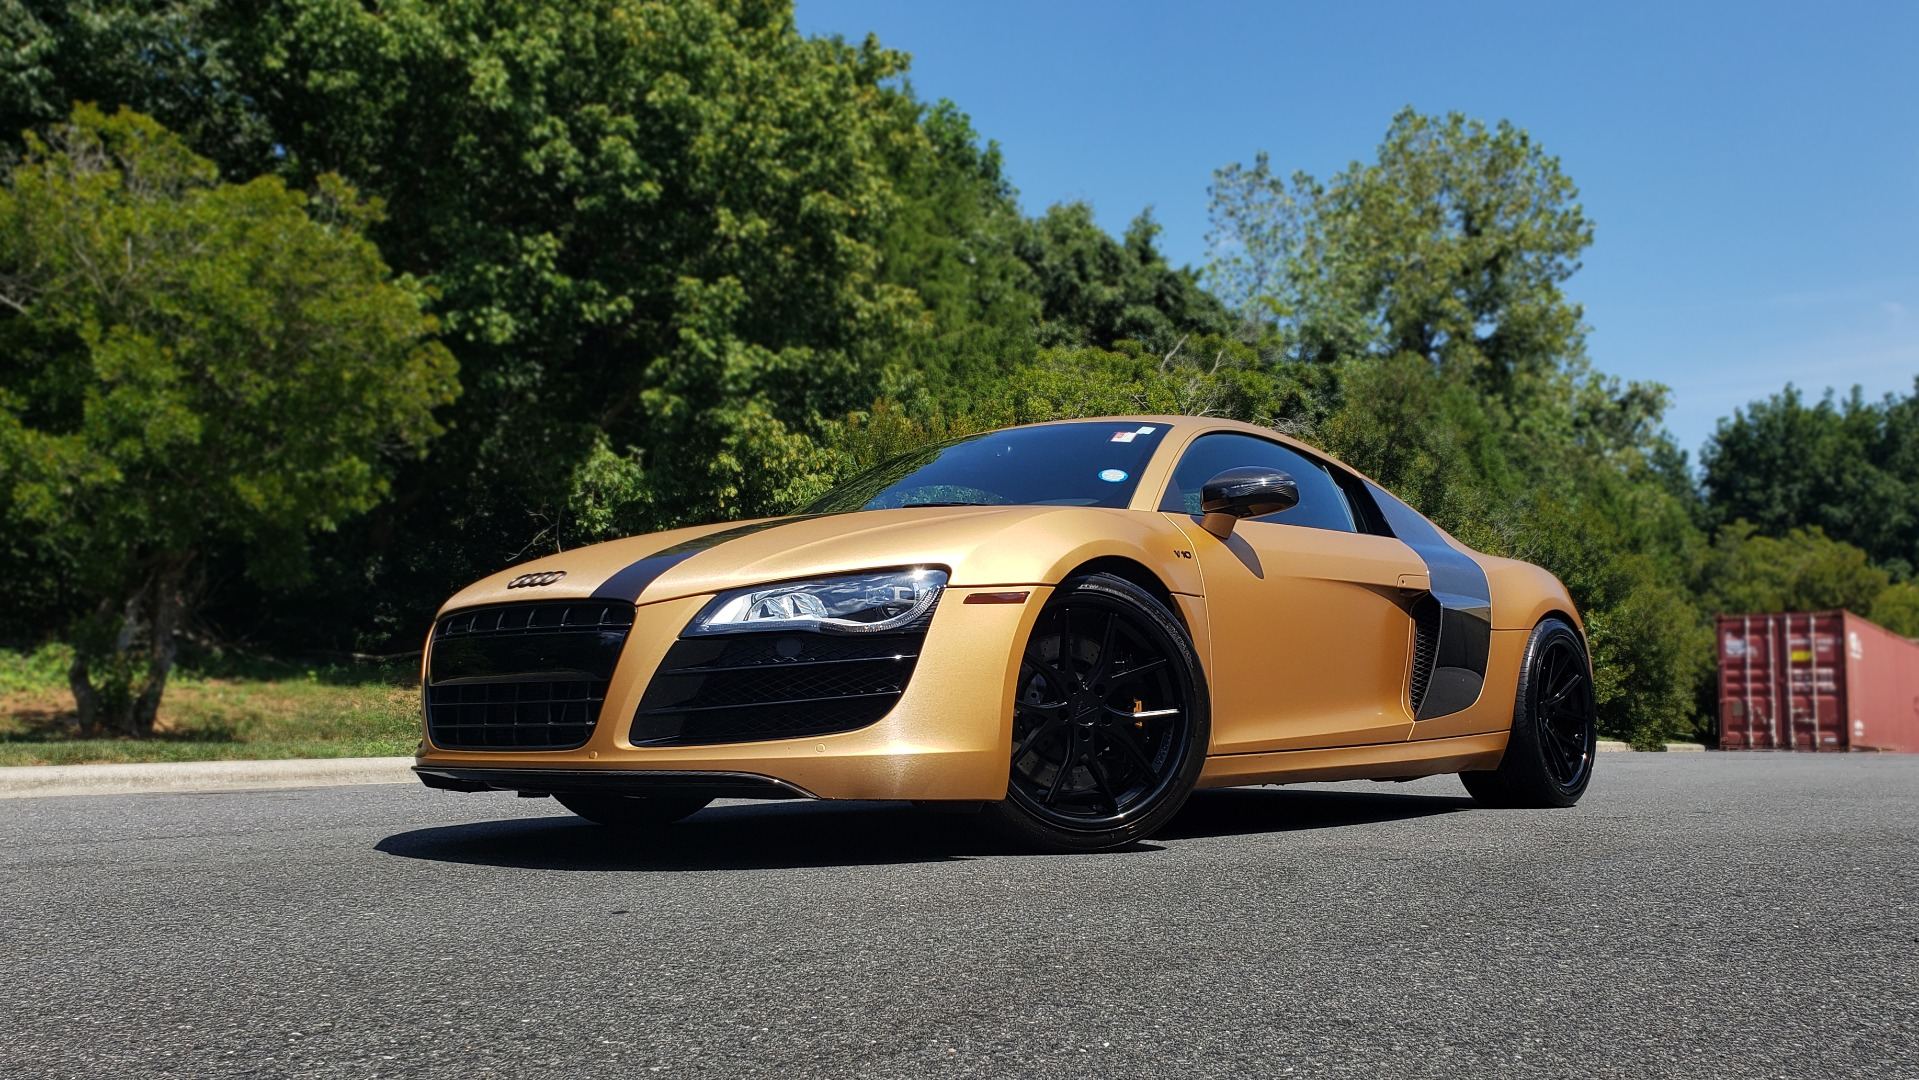 Used 2012 Audi R8 5.2L V10 / AWD / COUPE / NAV / 6-SPD AUTO / CUSTOM WRAP for sale Sold at Formula Imports in Charlotte NC 28227 1